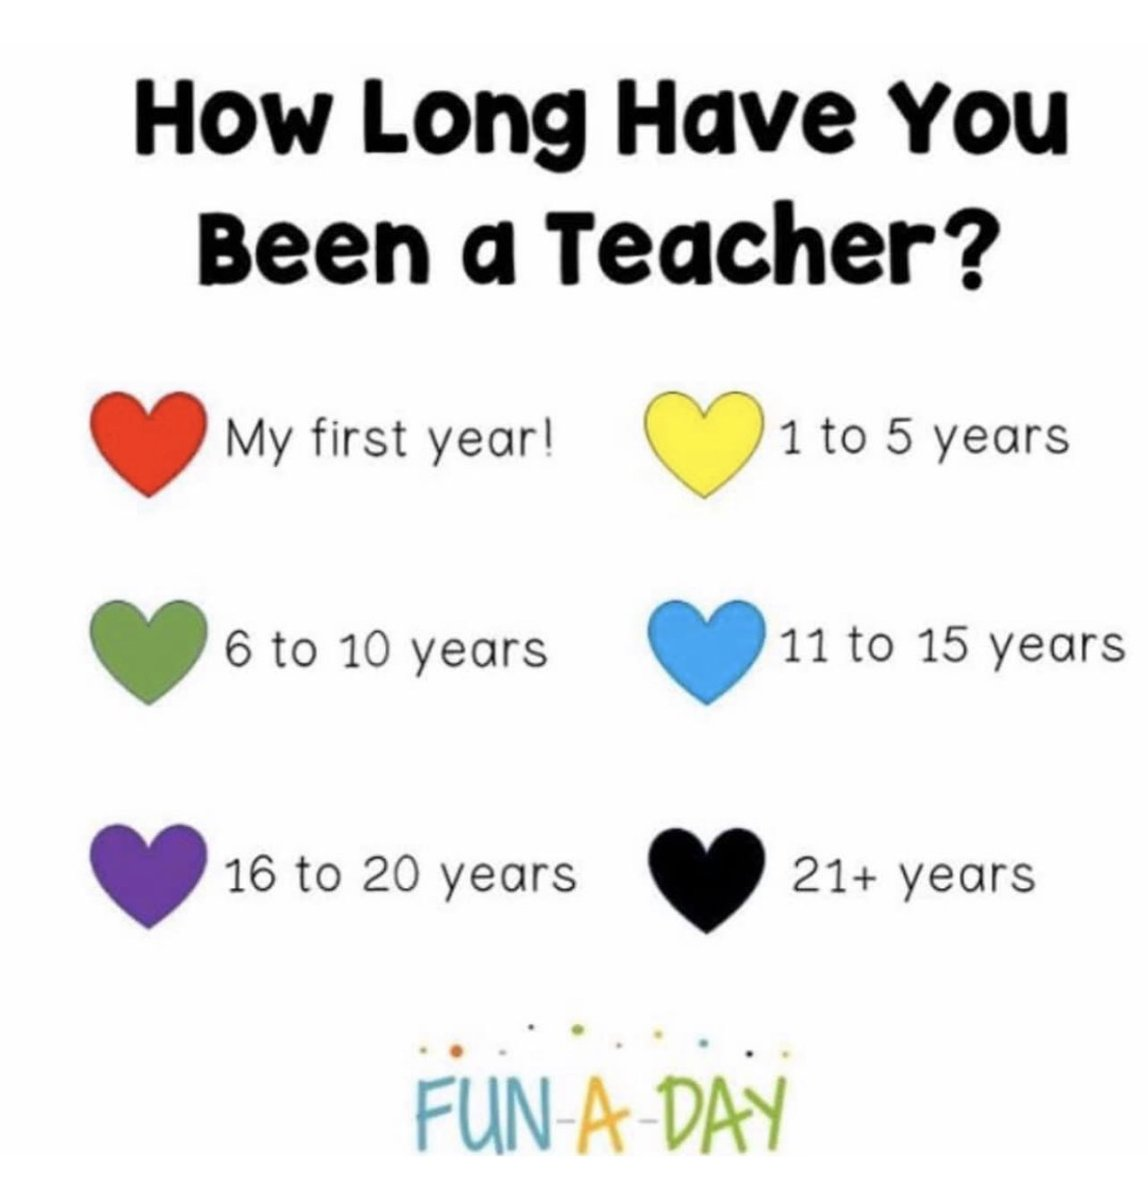 How long have you been a teacher? Please place your heart and retweet this post! I am in my last year of the 💚 #BetterTogether #Share #ShareYourHeart #TuesdayVibe